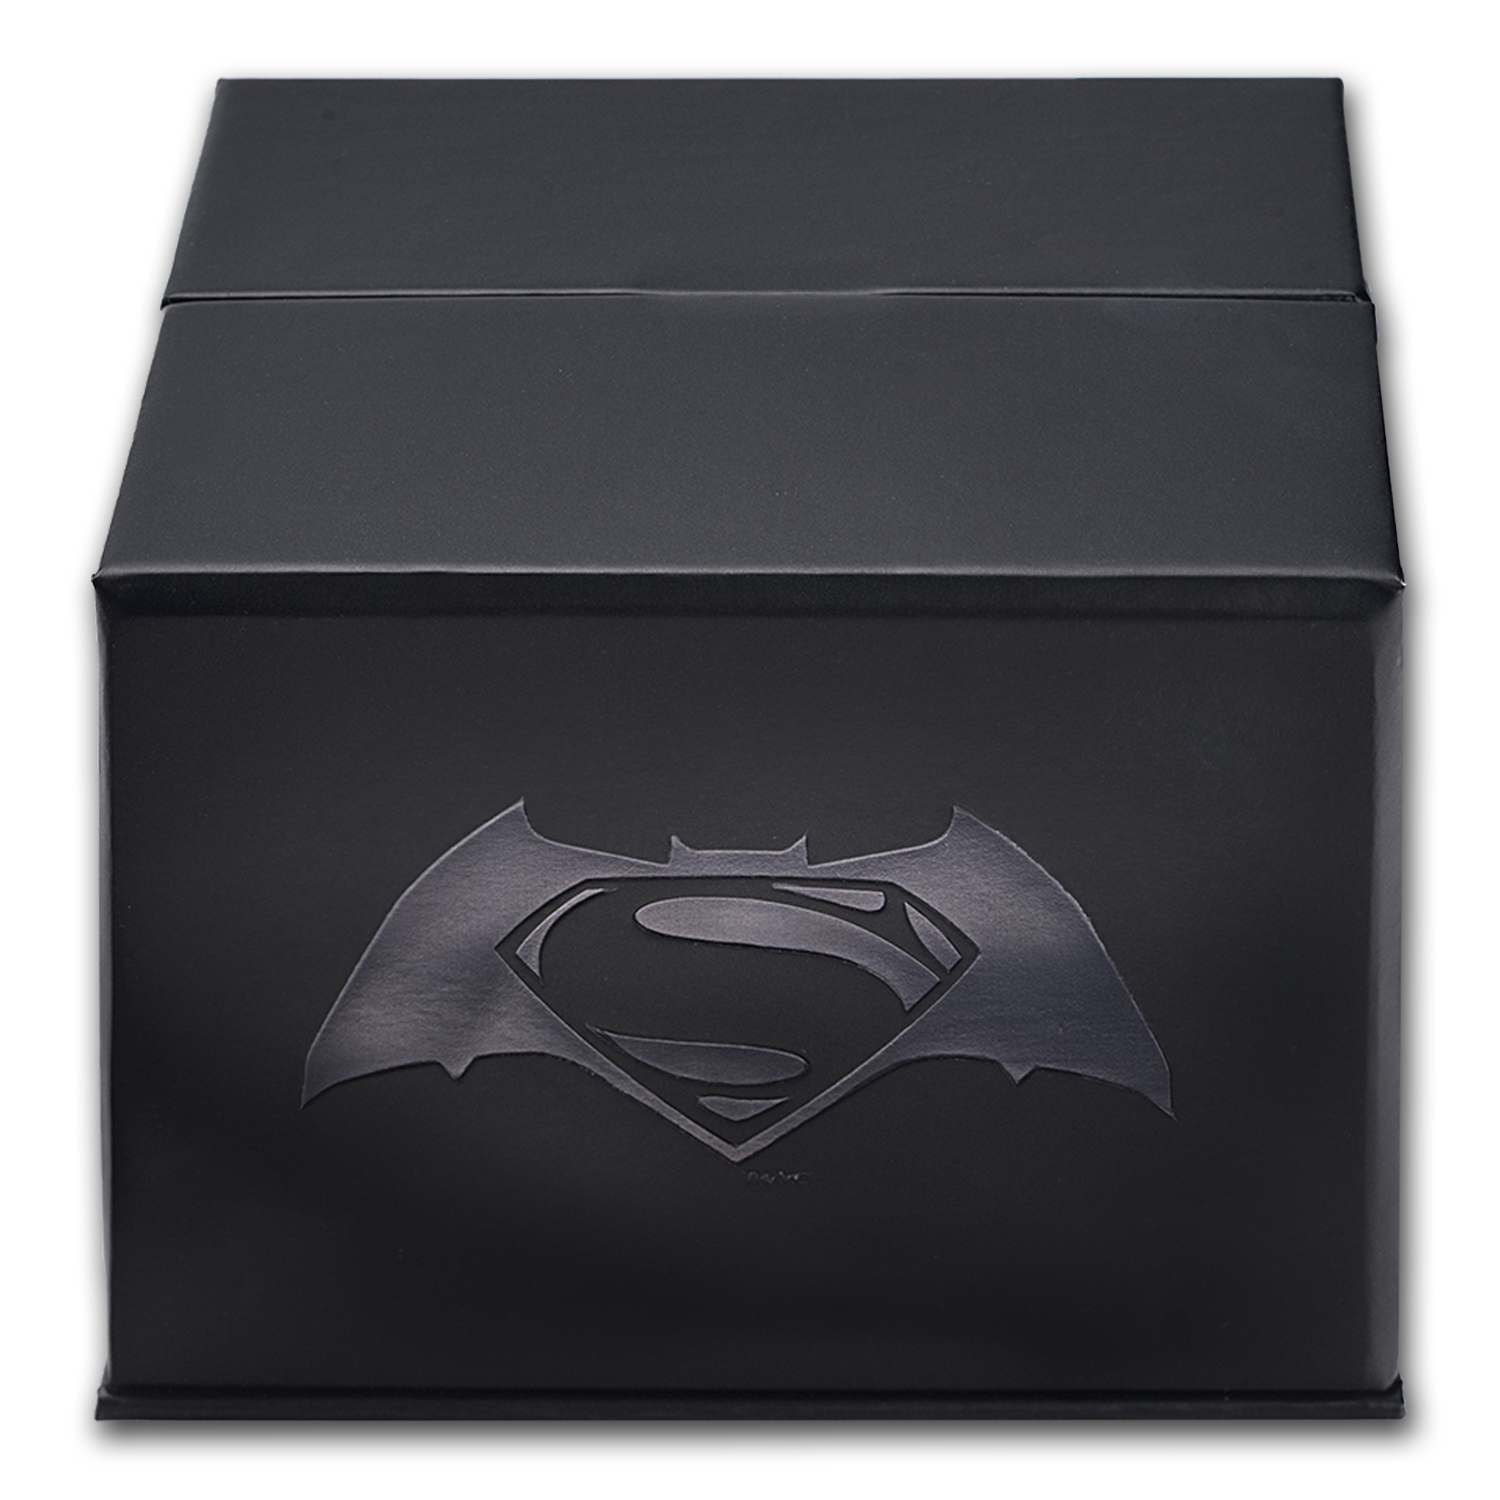 2016 Canada Proof 1 oz Silver $20 Batman v Superman: The Trinity